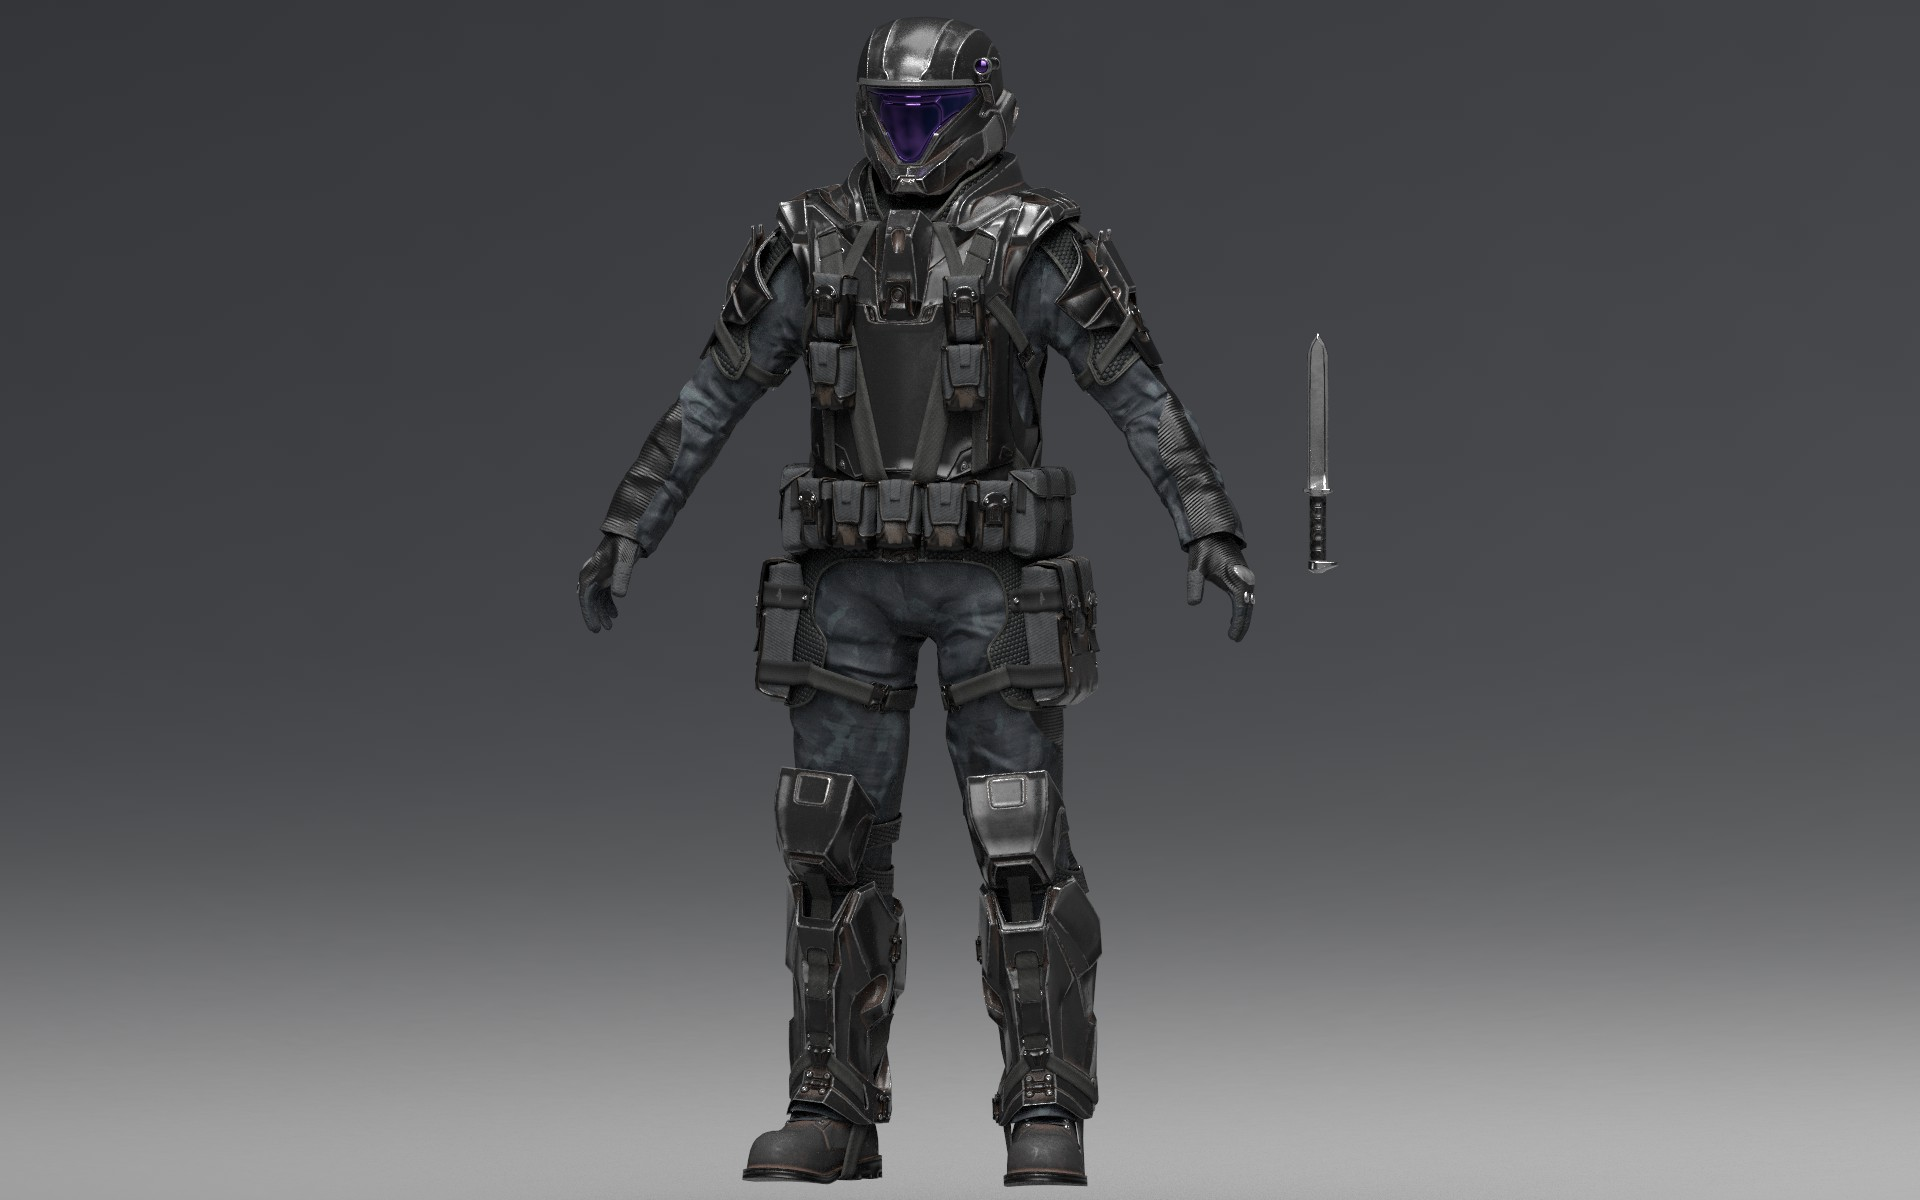 Halo 2 Anniversary Odst Build Halo Costume And Prop